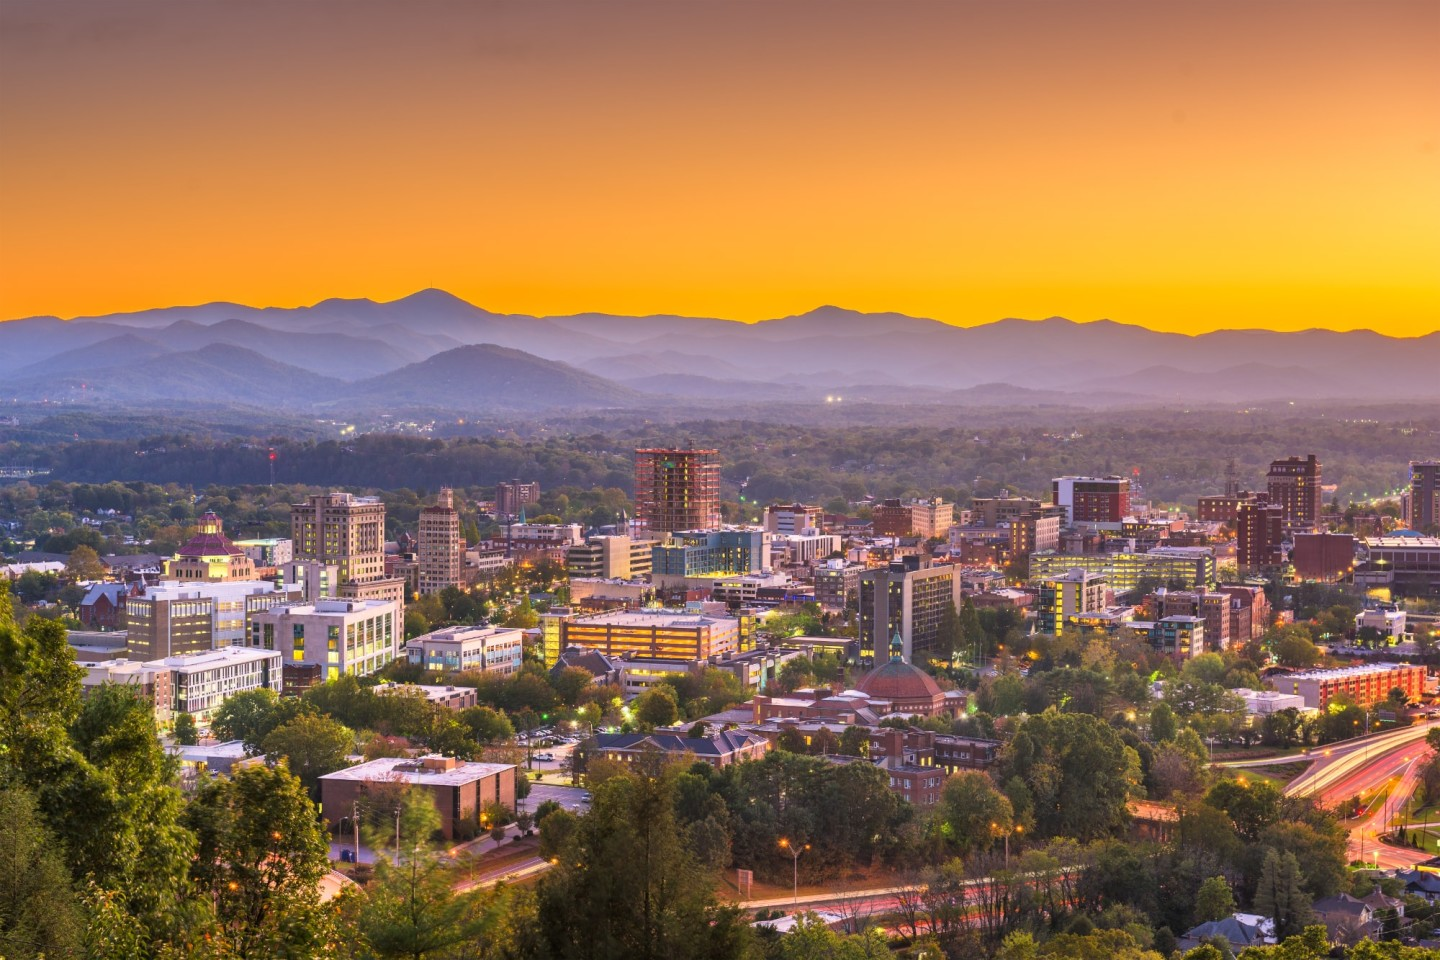 Asheville, North Carolina cityscape - nestled in the Appalachian mountains